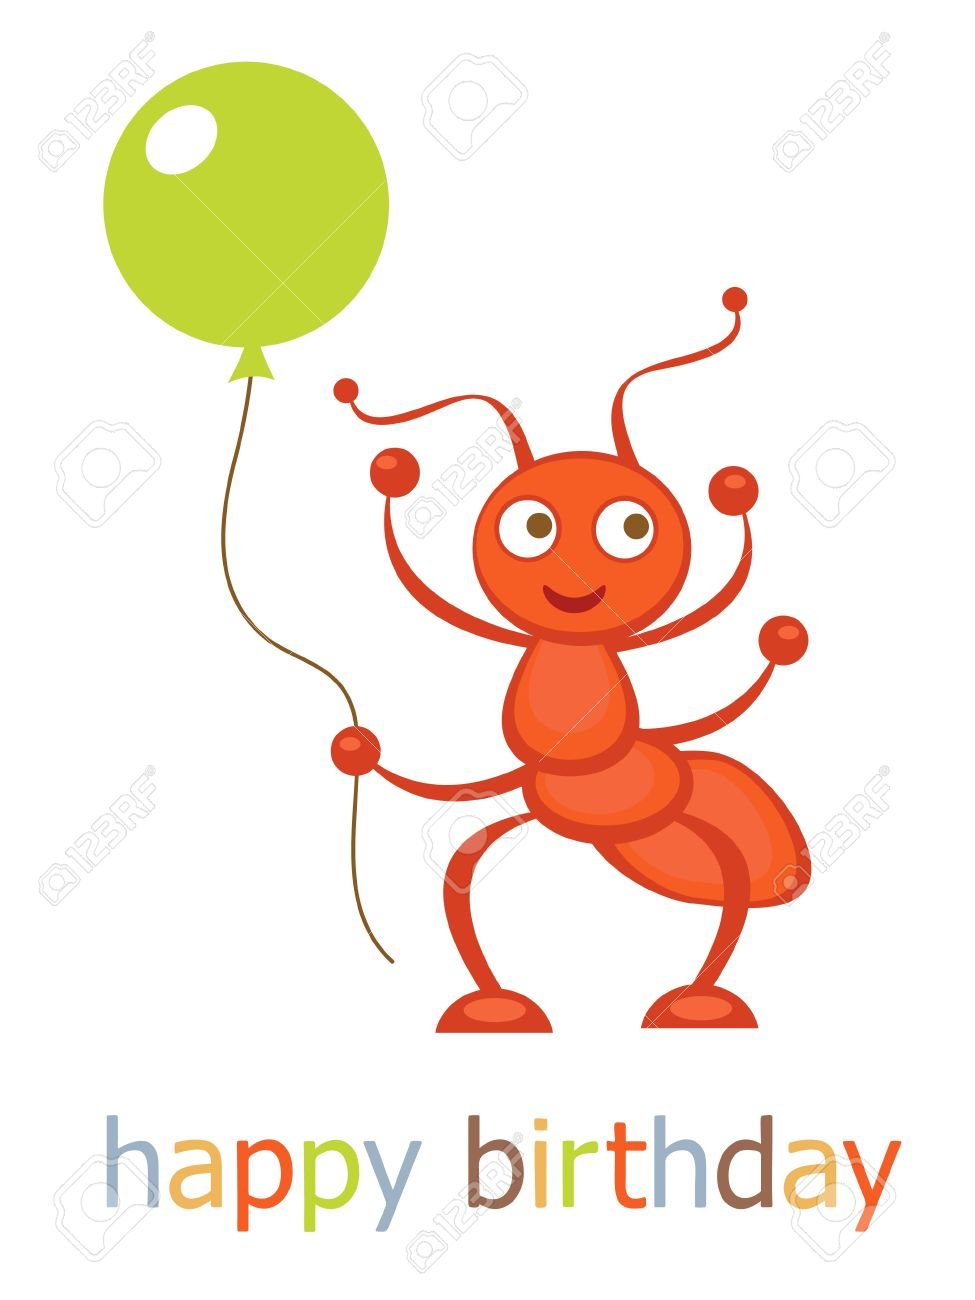 Happy birthday card with ant holding balloon Stock Vector - 17710665